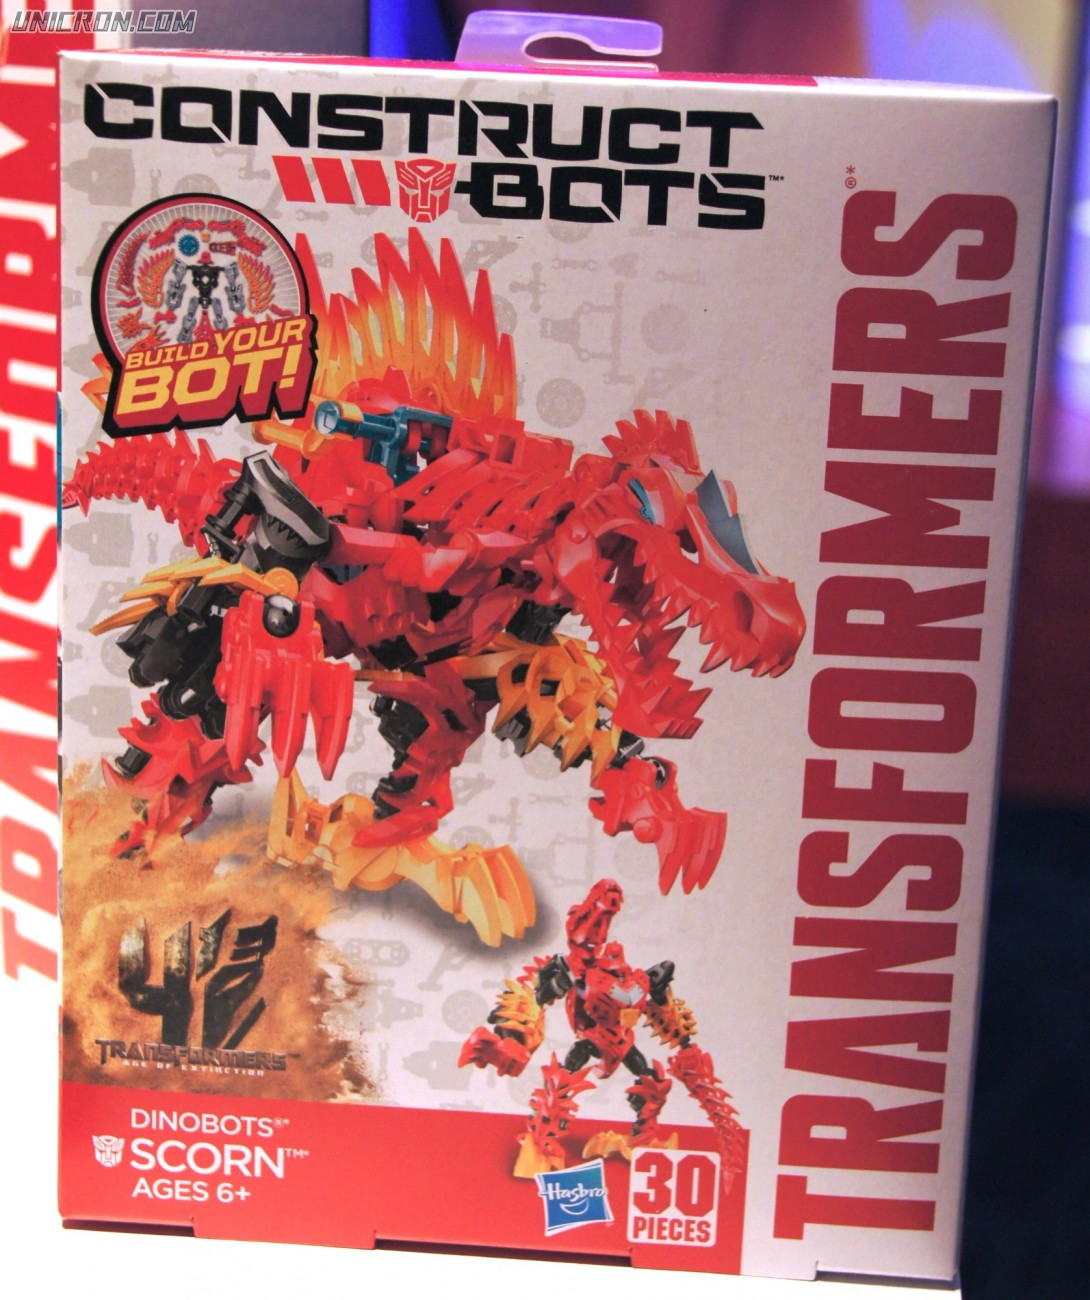 Transformers Construct-Bots Scorn (Construct-Bots) toy